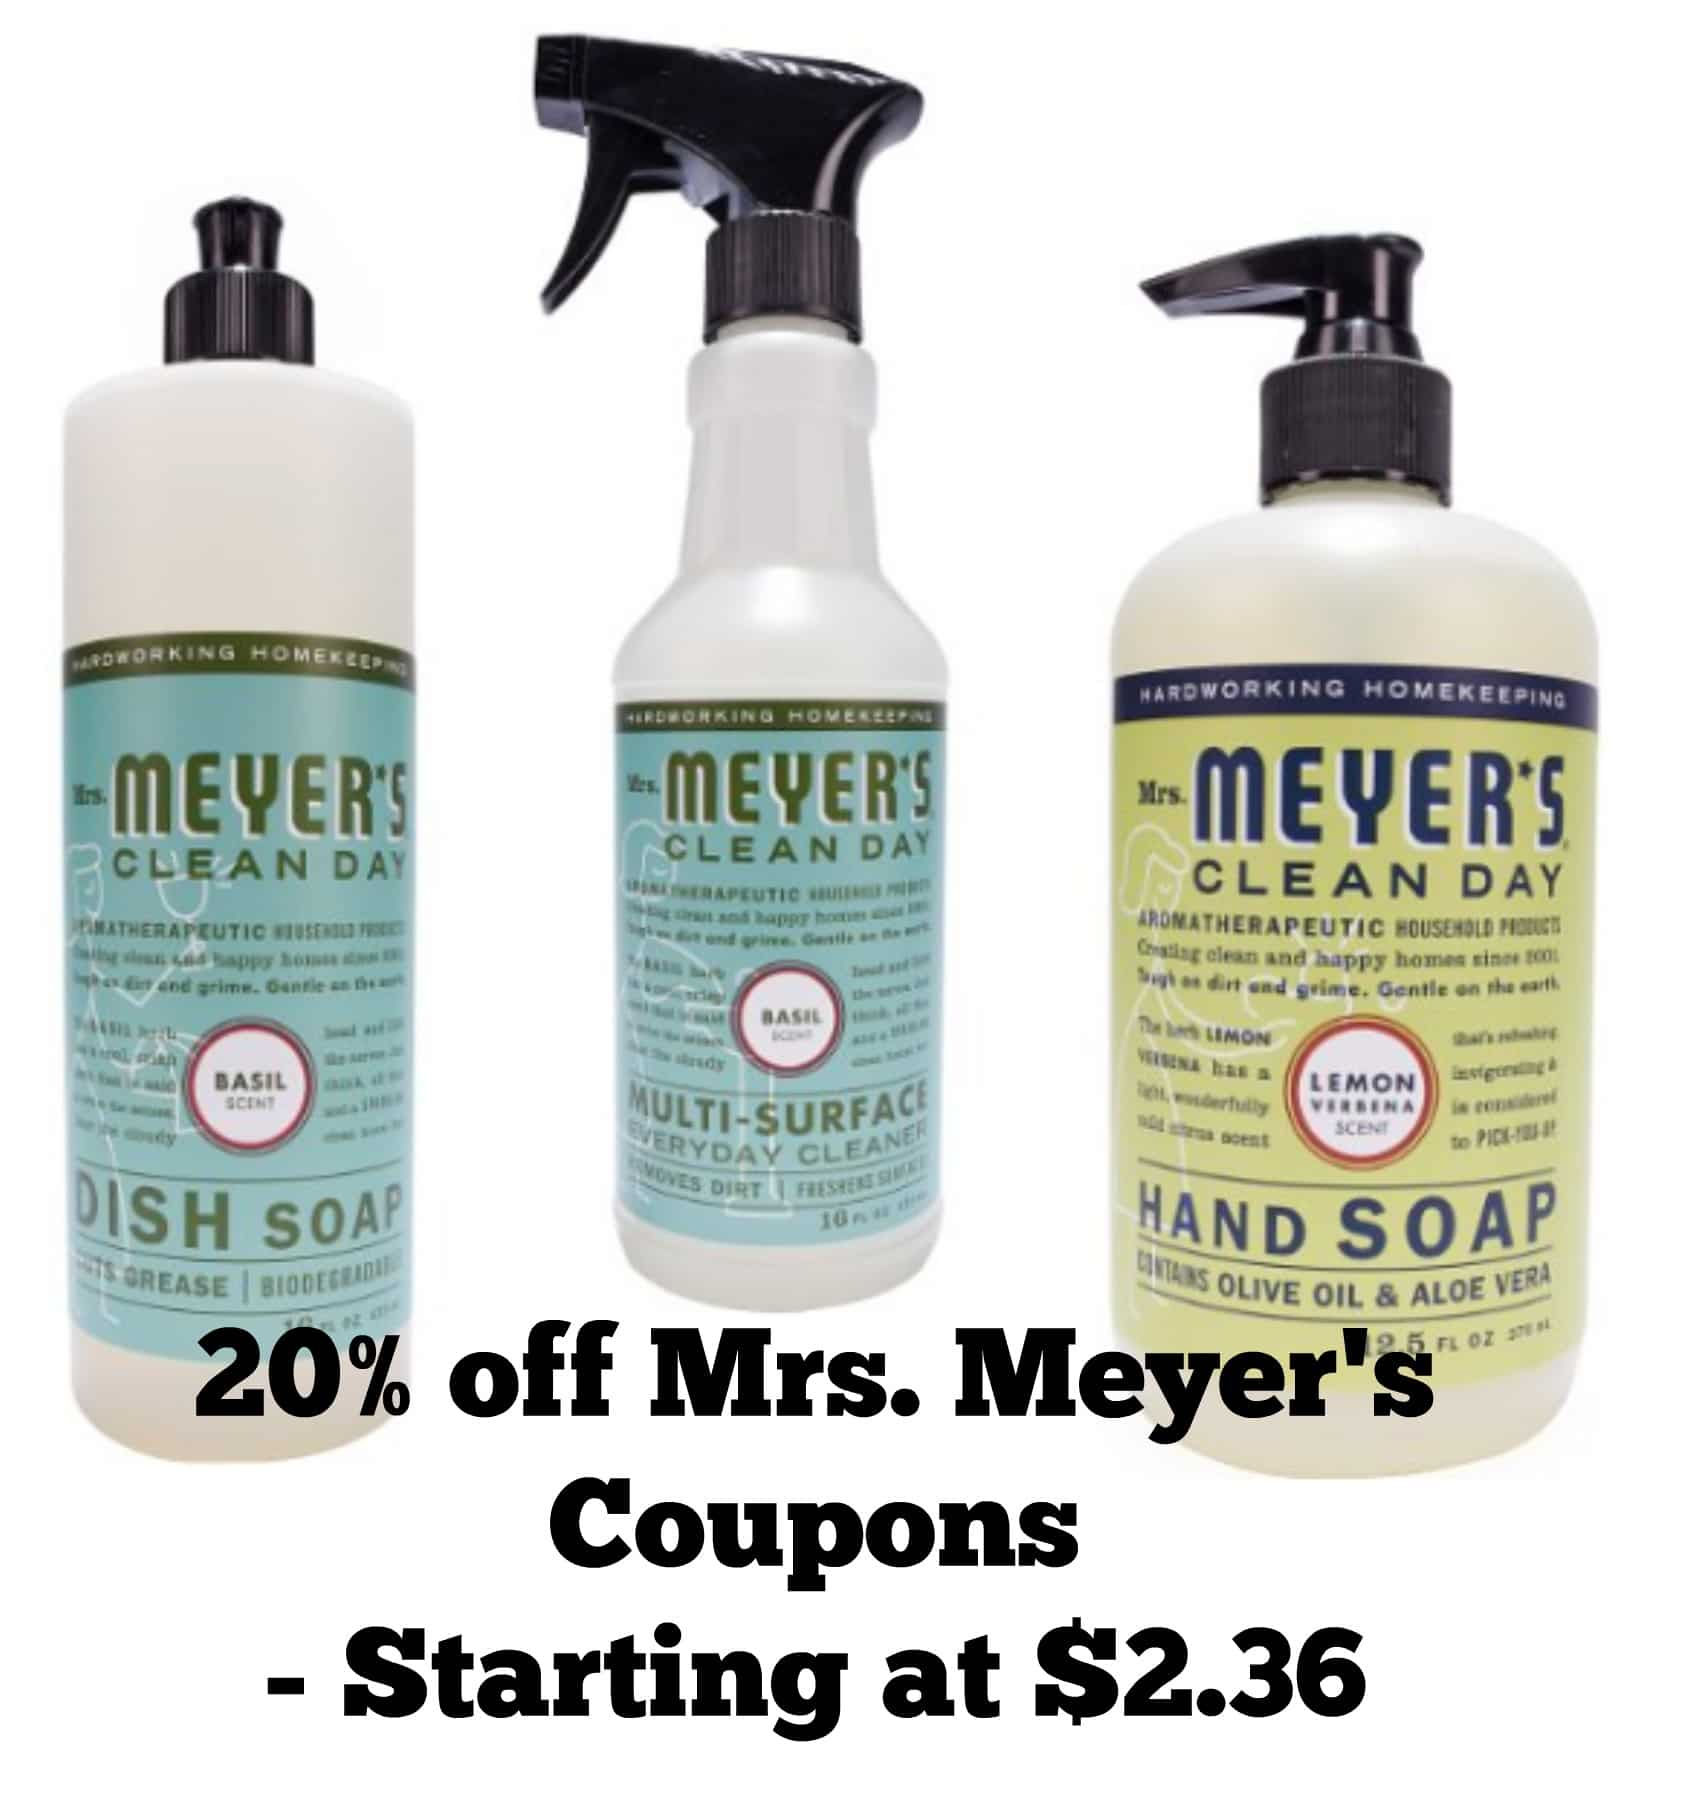 Mrs meyers coupons